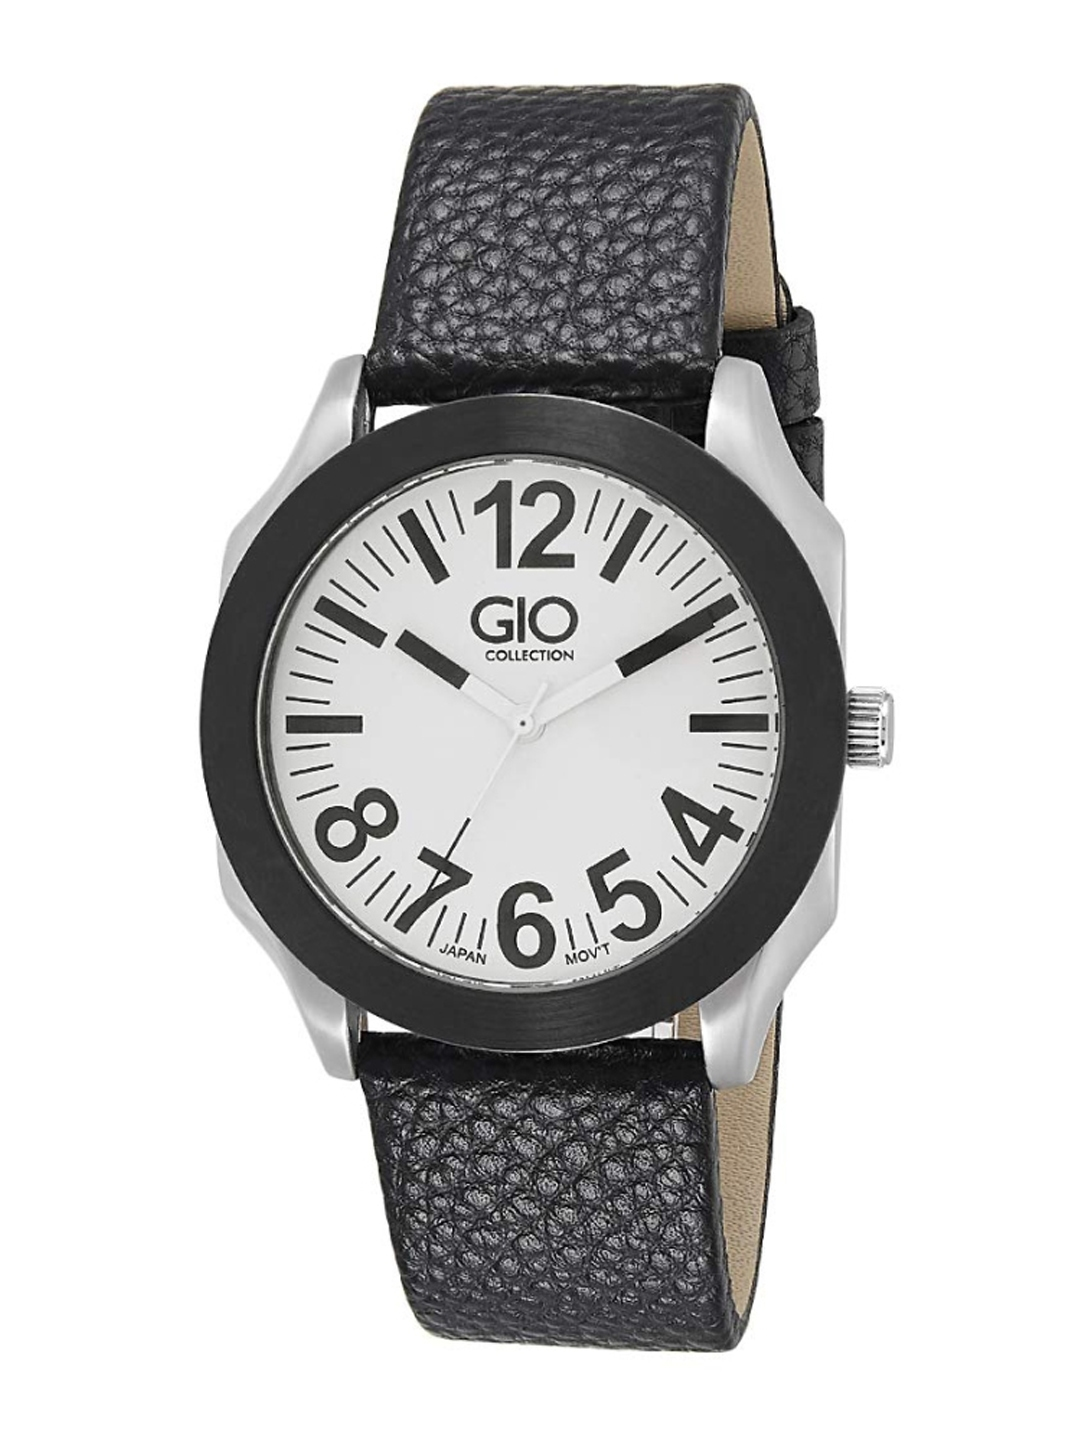 GIO COLLECTION Men White Analogue Watch G0006 05X